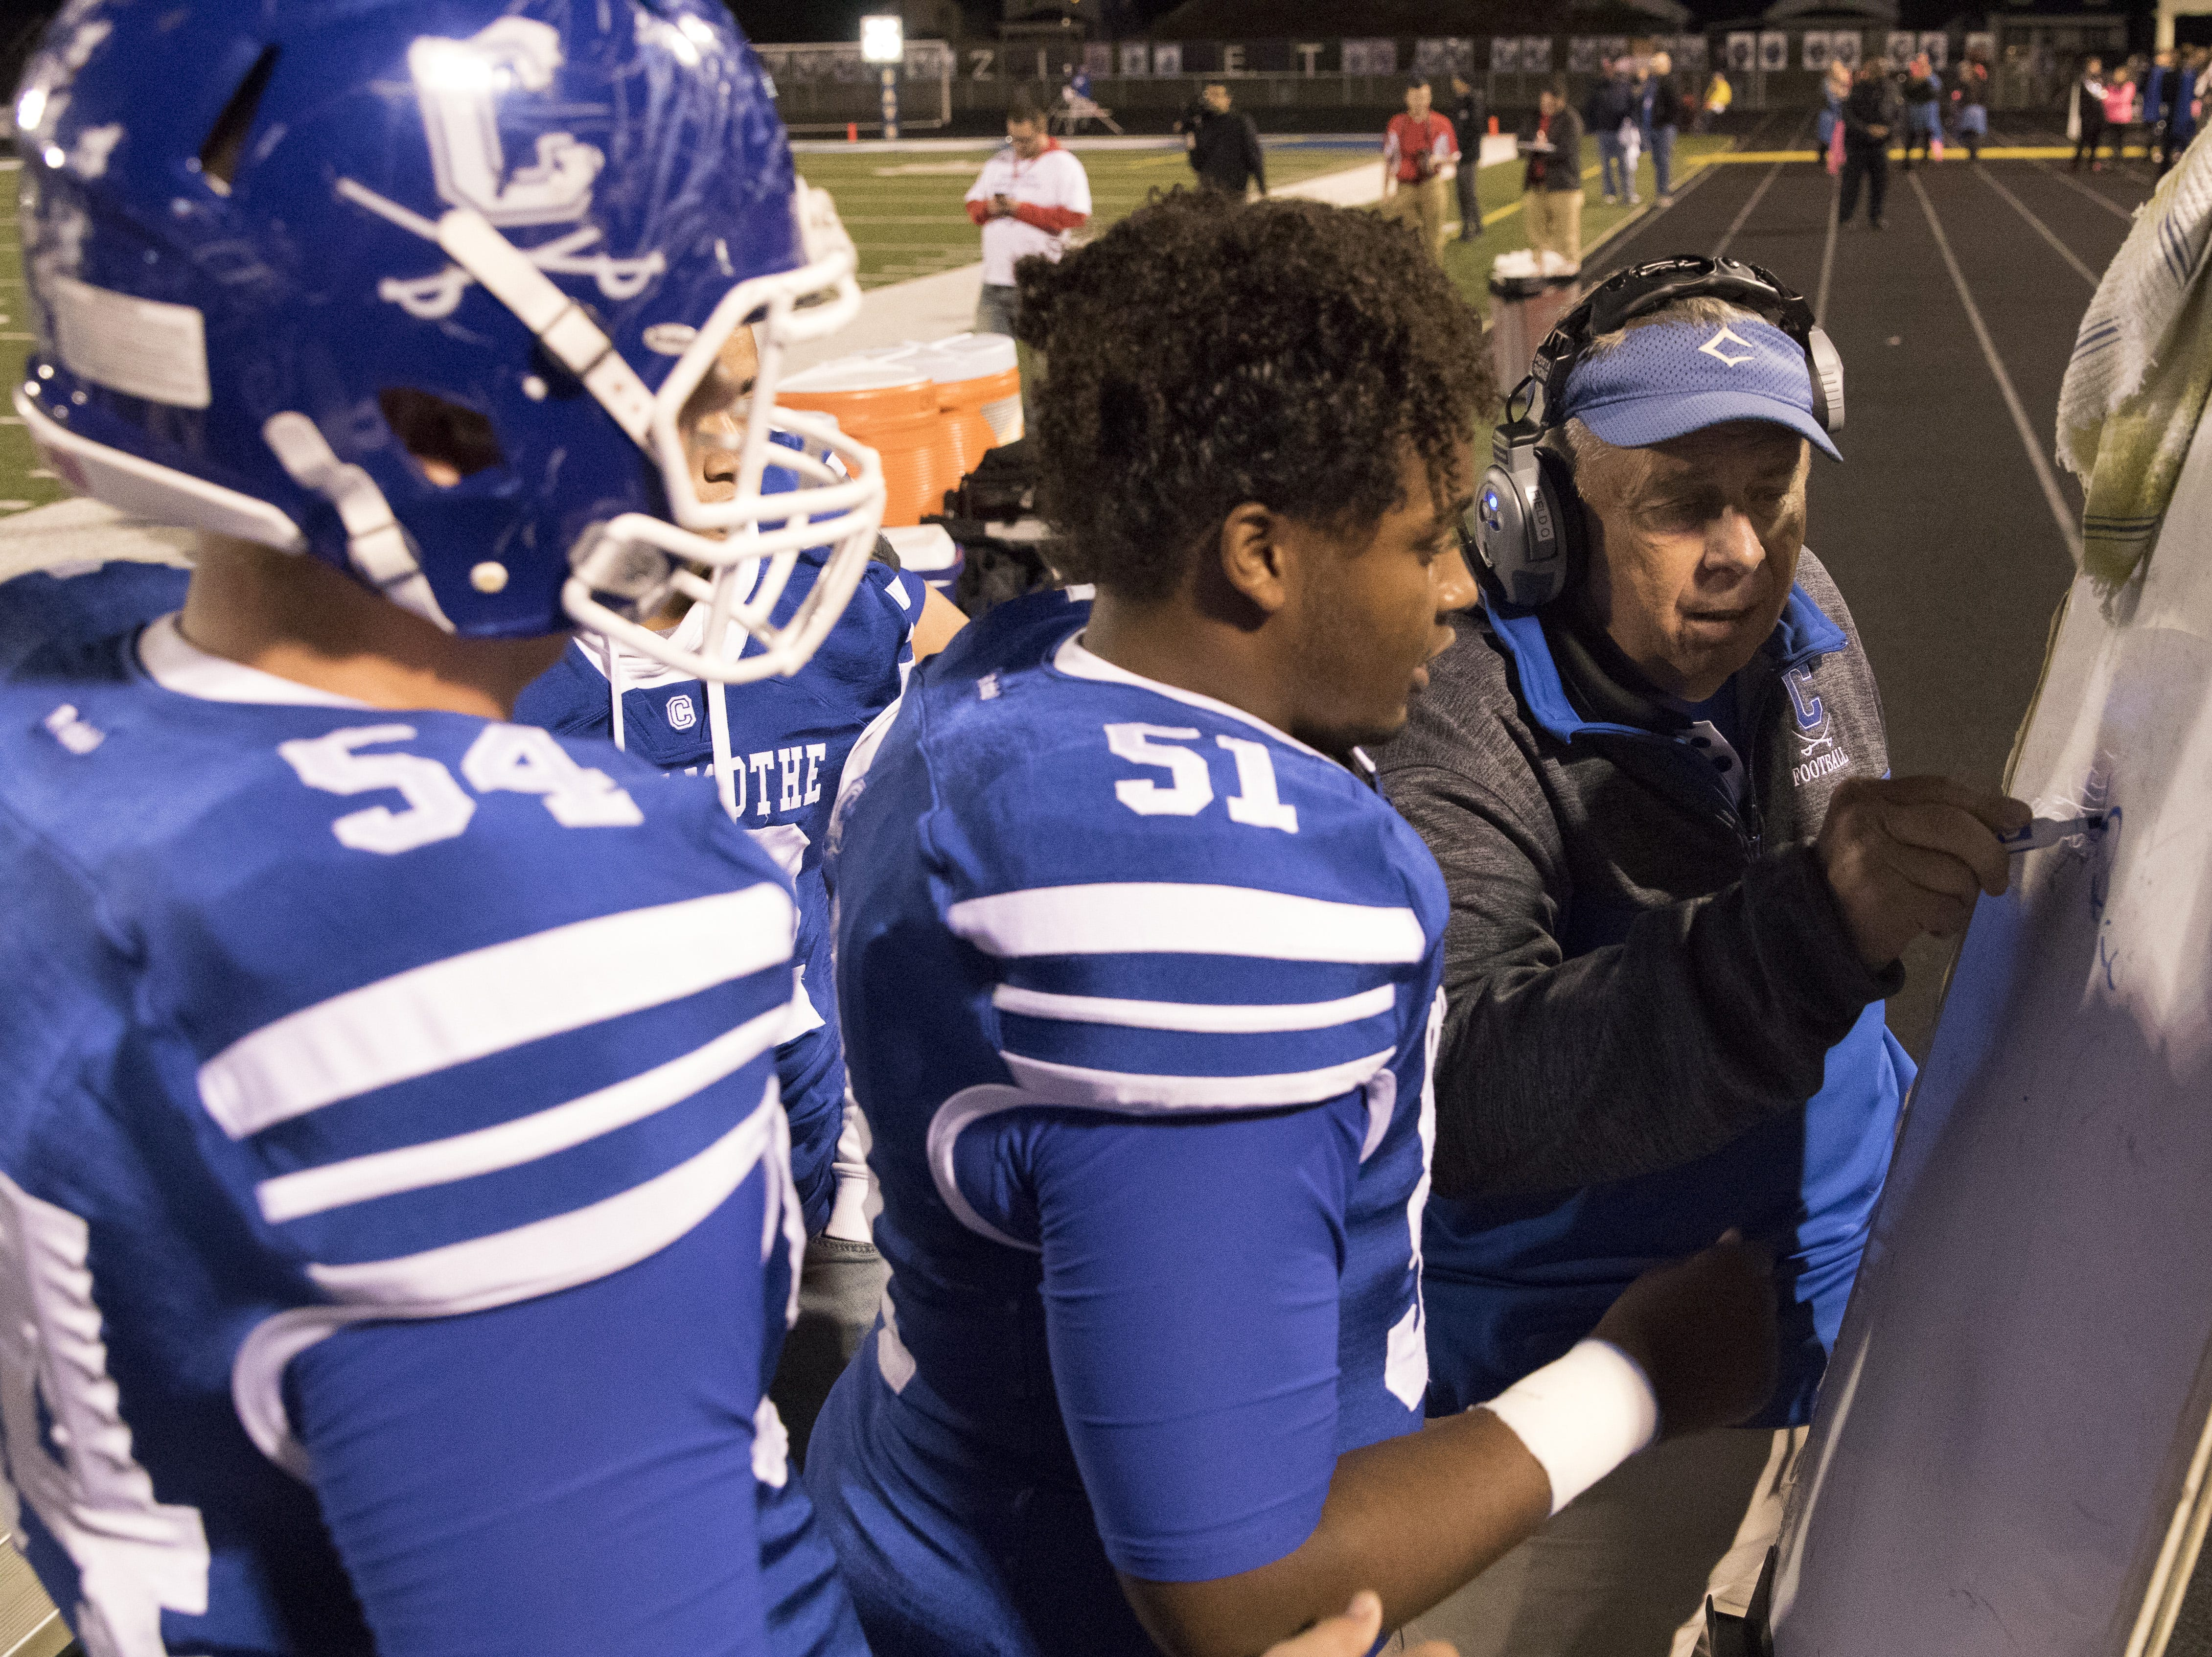 Head coach Ron Hinton talks strategy with Bryce Valentine and Bradley Rinehart during the first half of the game Friday night against Washington Courthouse.